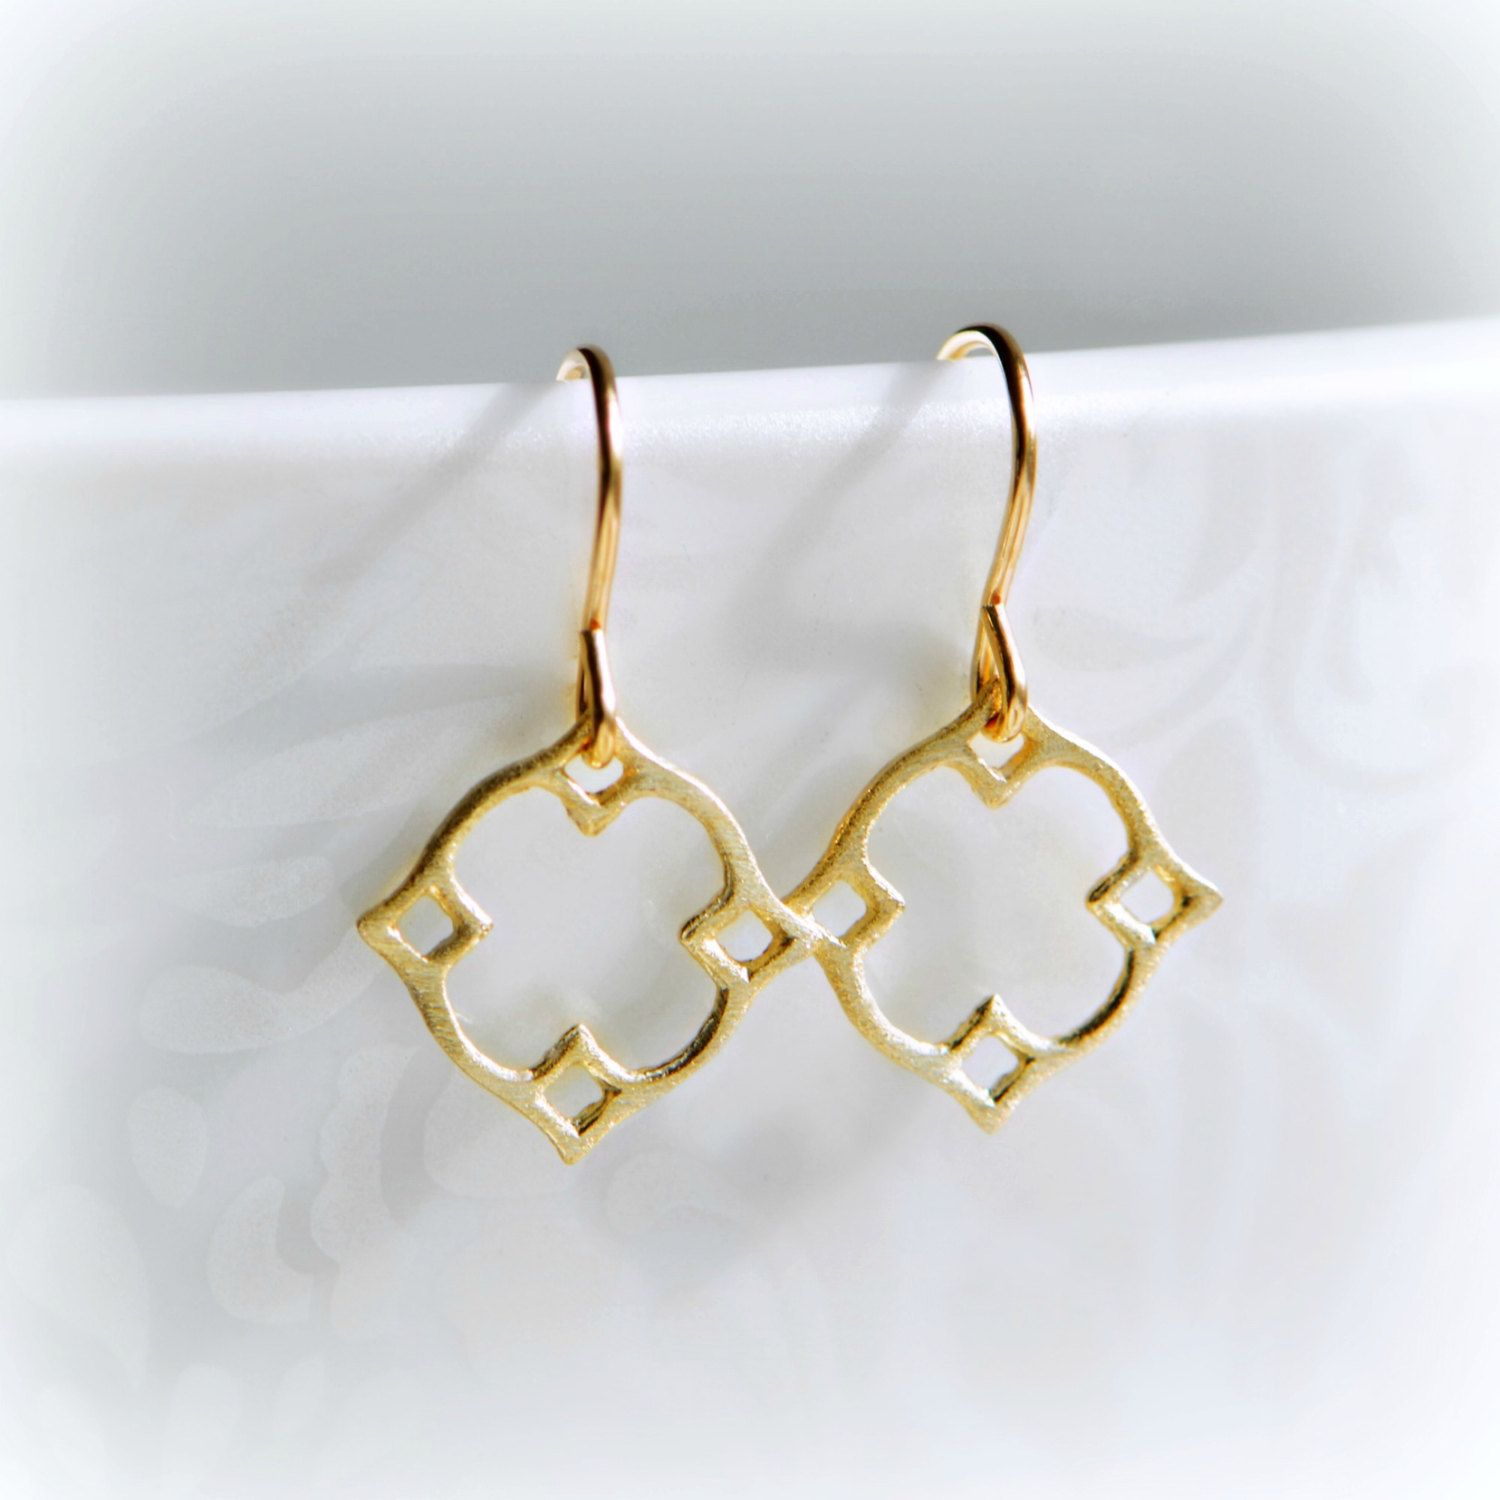 trillion earrings gold web and white p oro classic delicate vrai products modern diamond